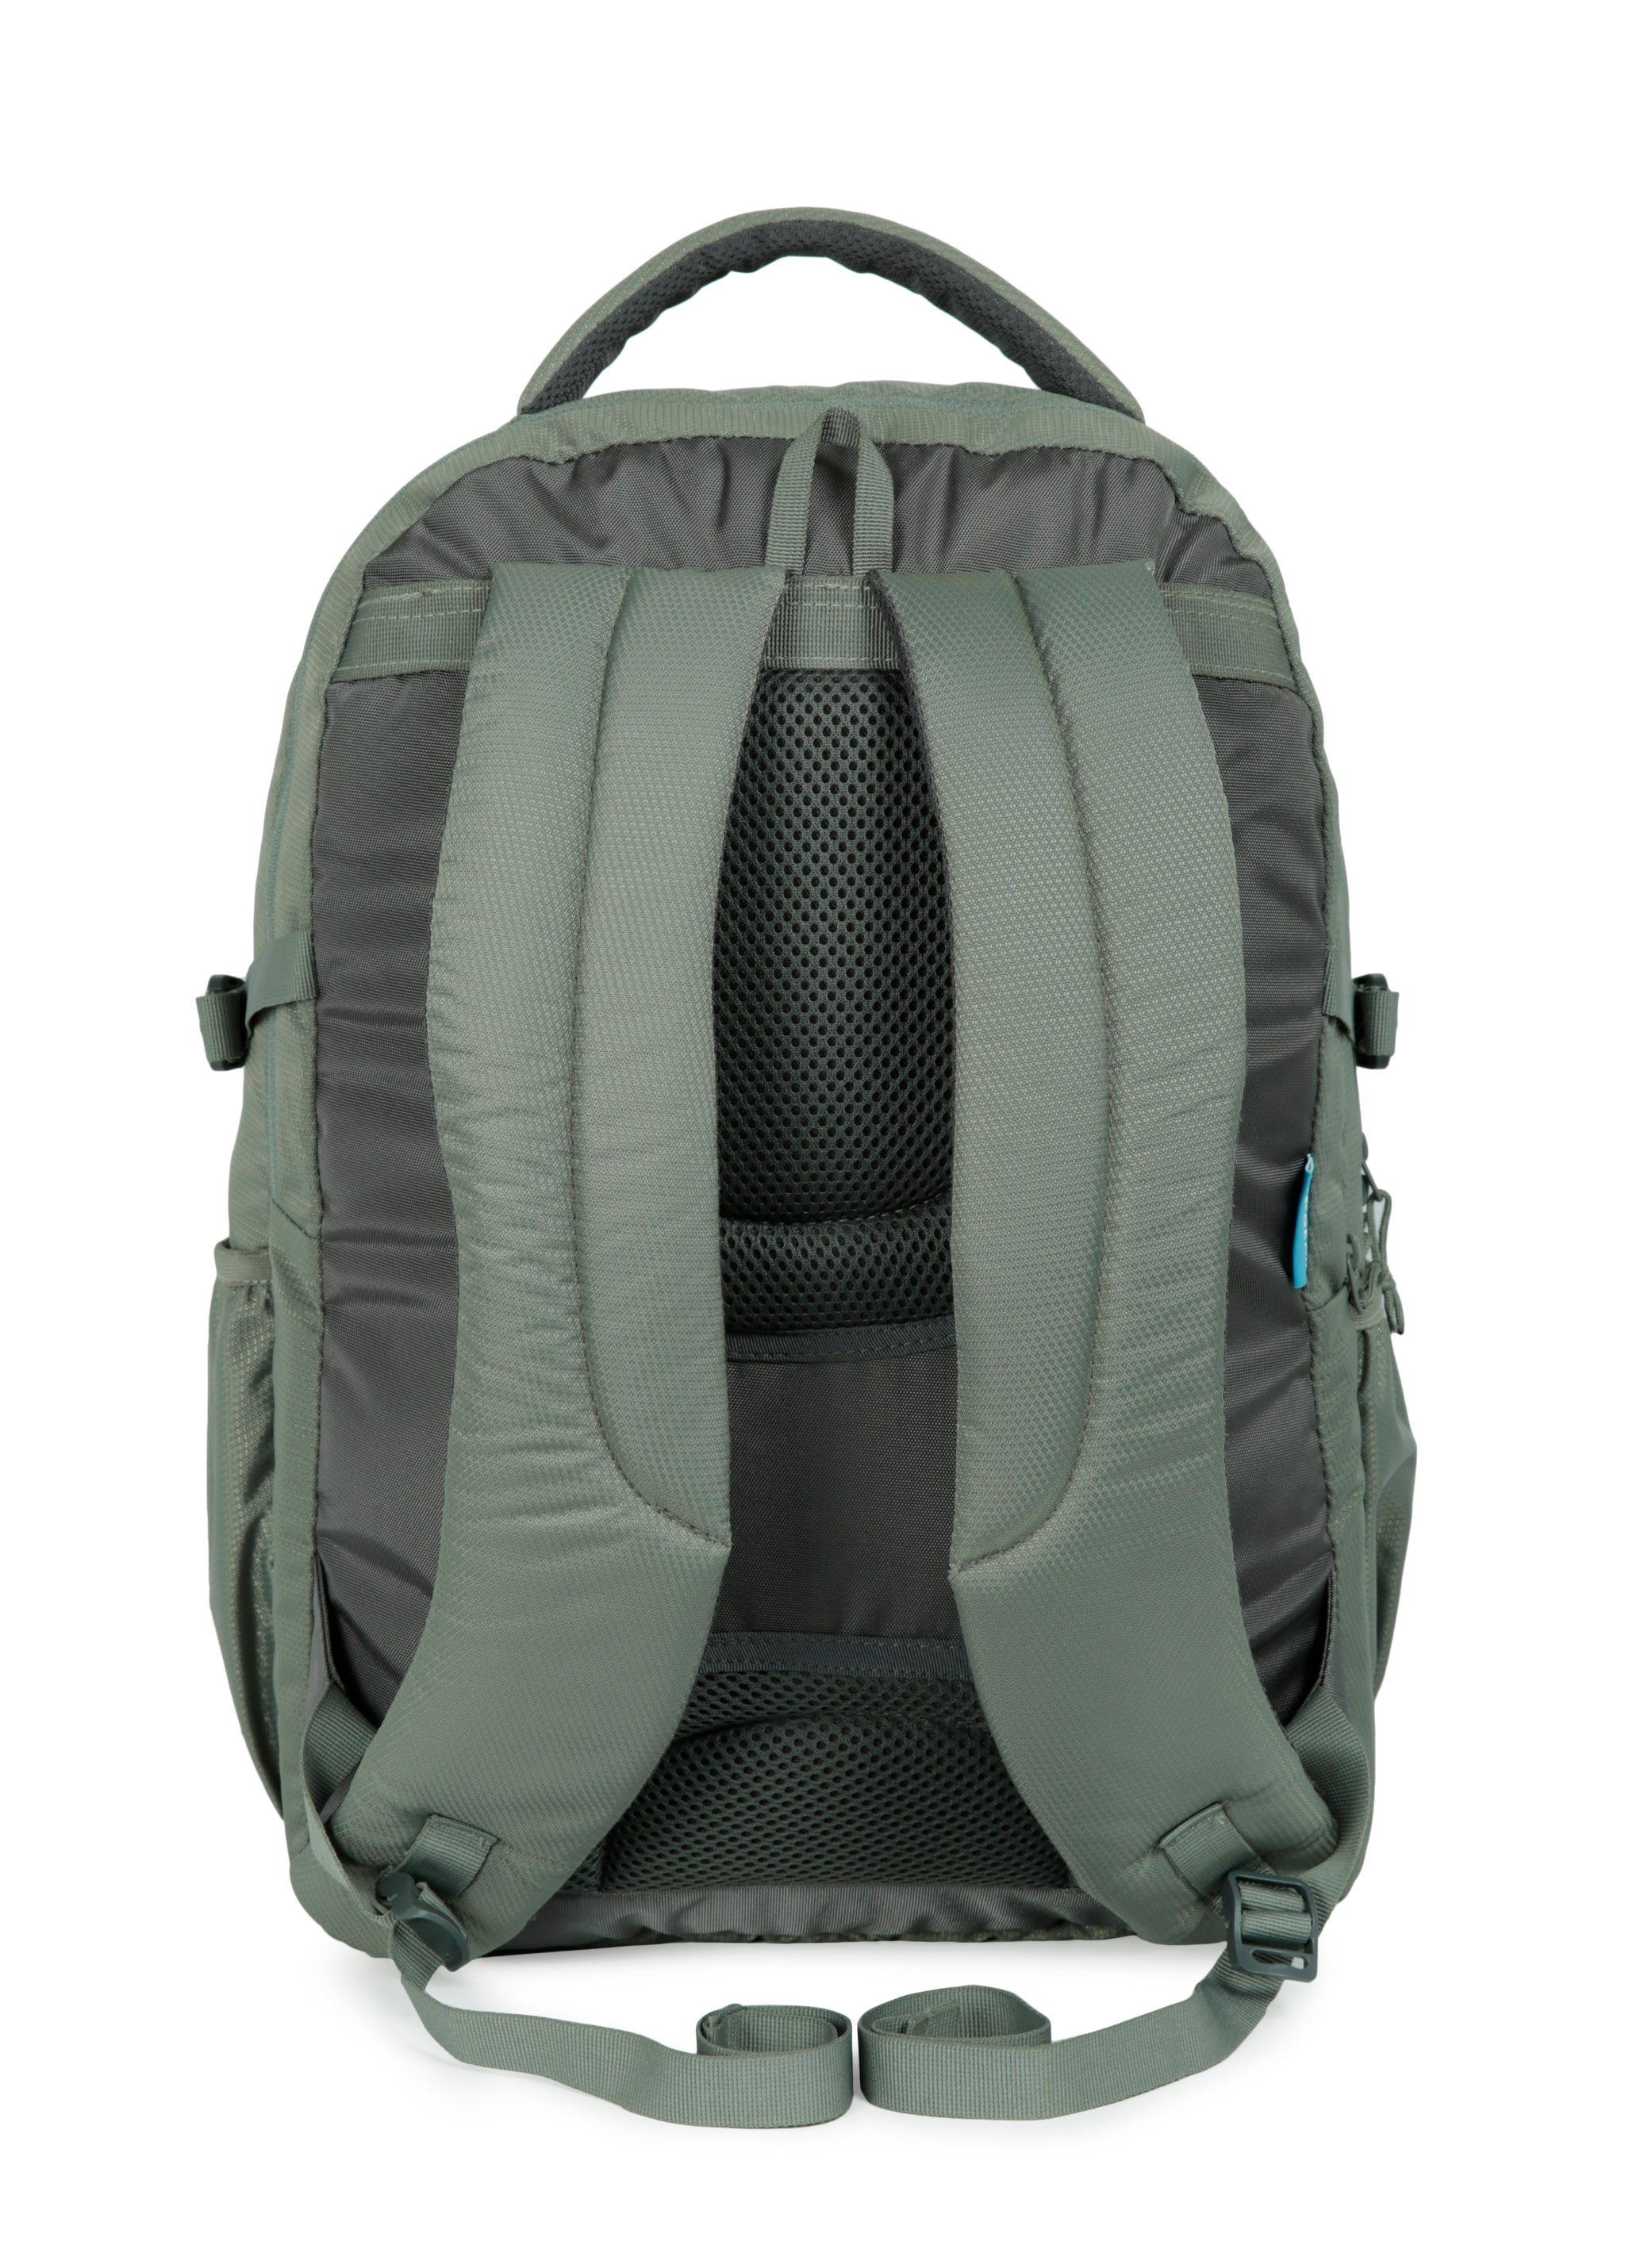 F Gear Talent Doby 32 Ltrs Grey Laptop Backpack (3181)